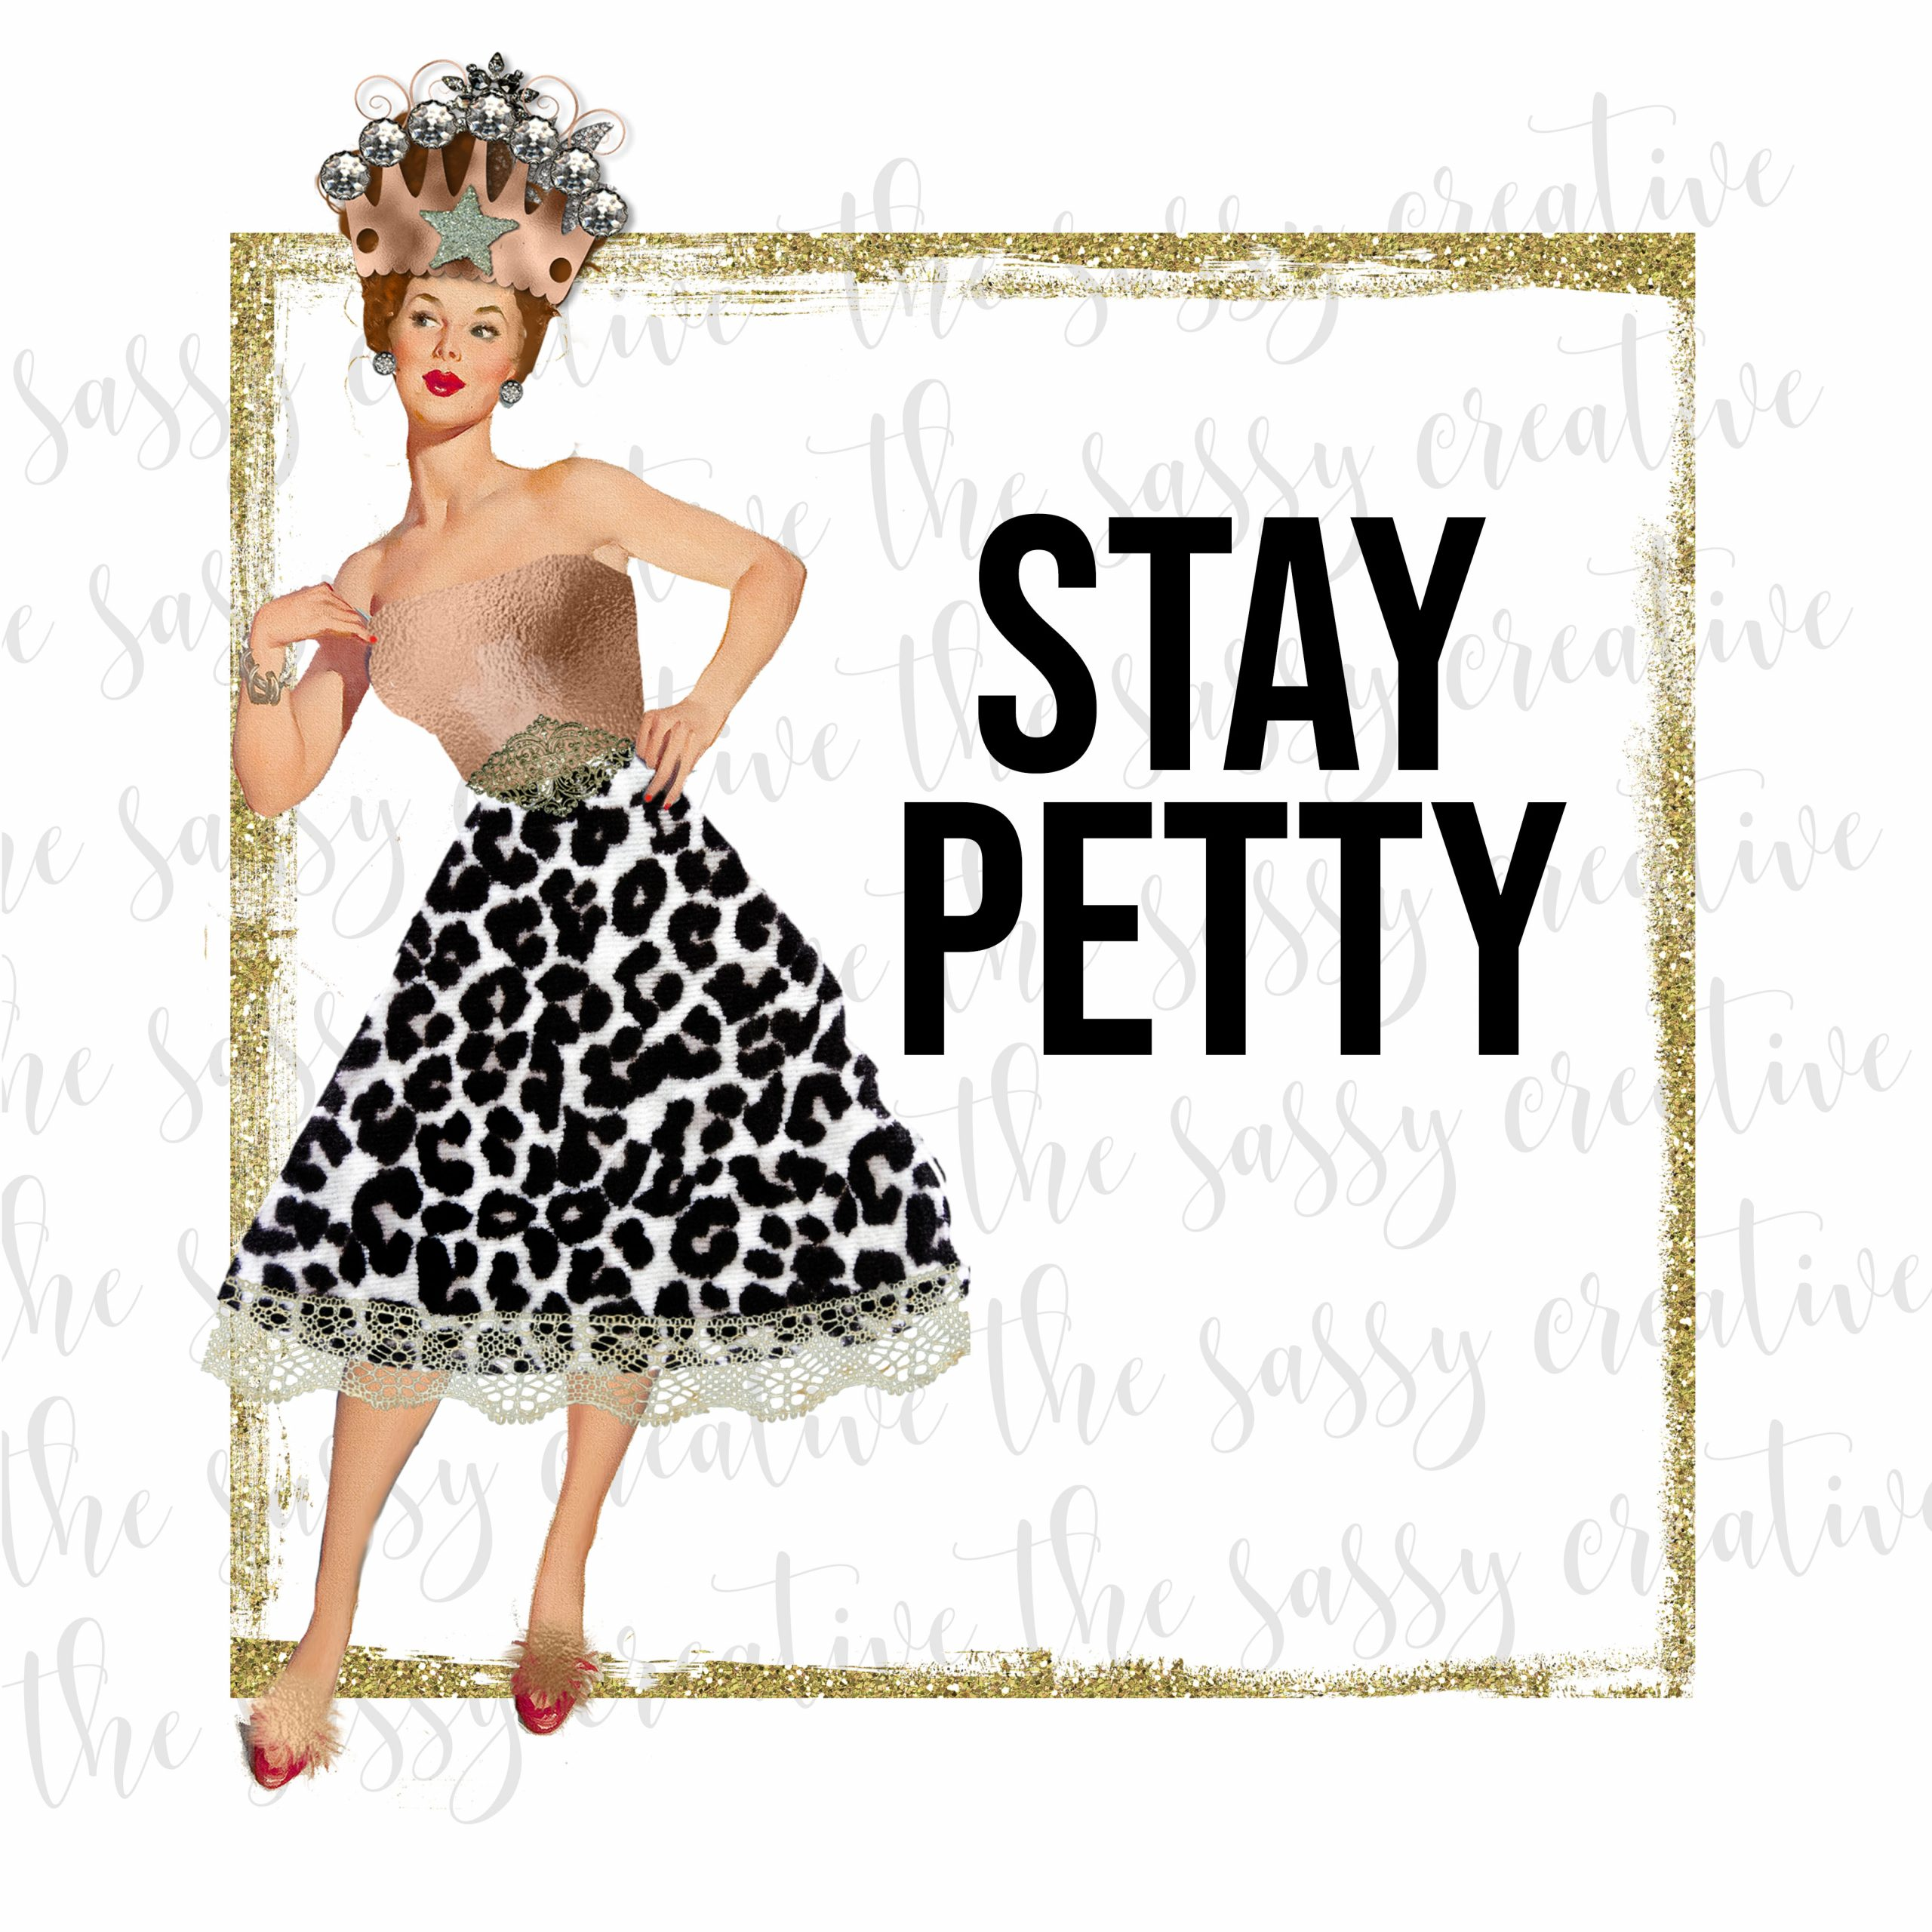 Stay Petty Cover